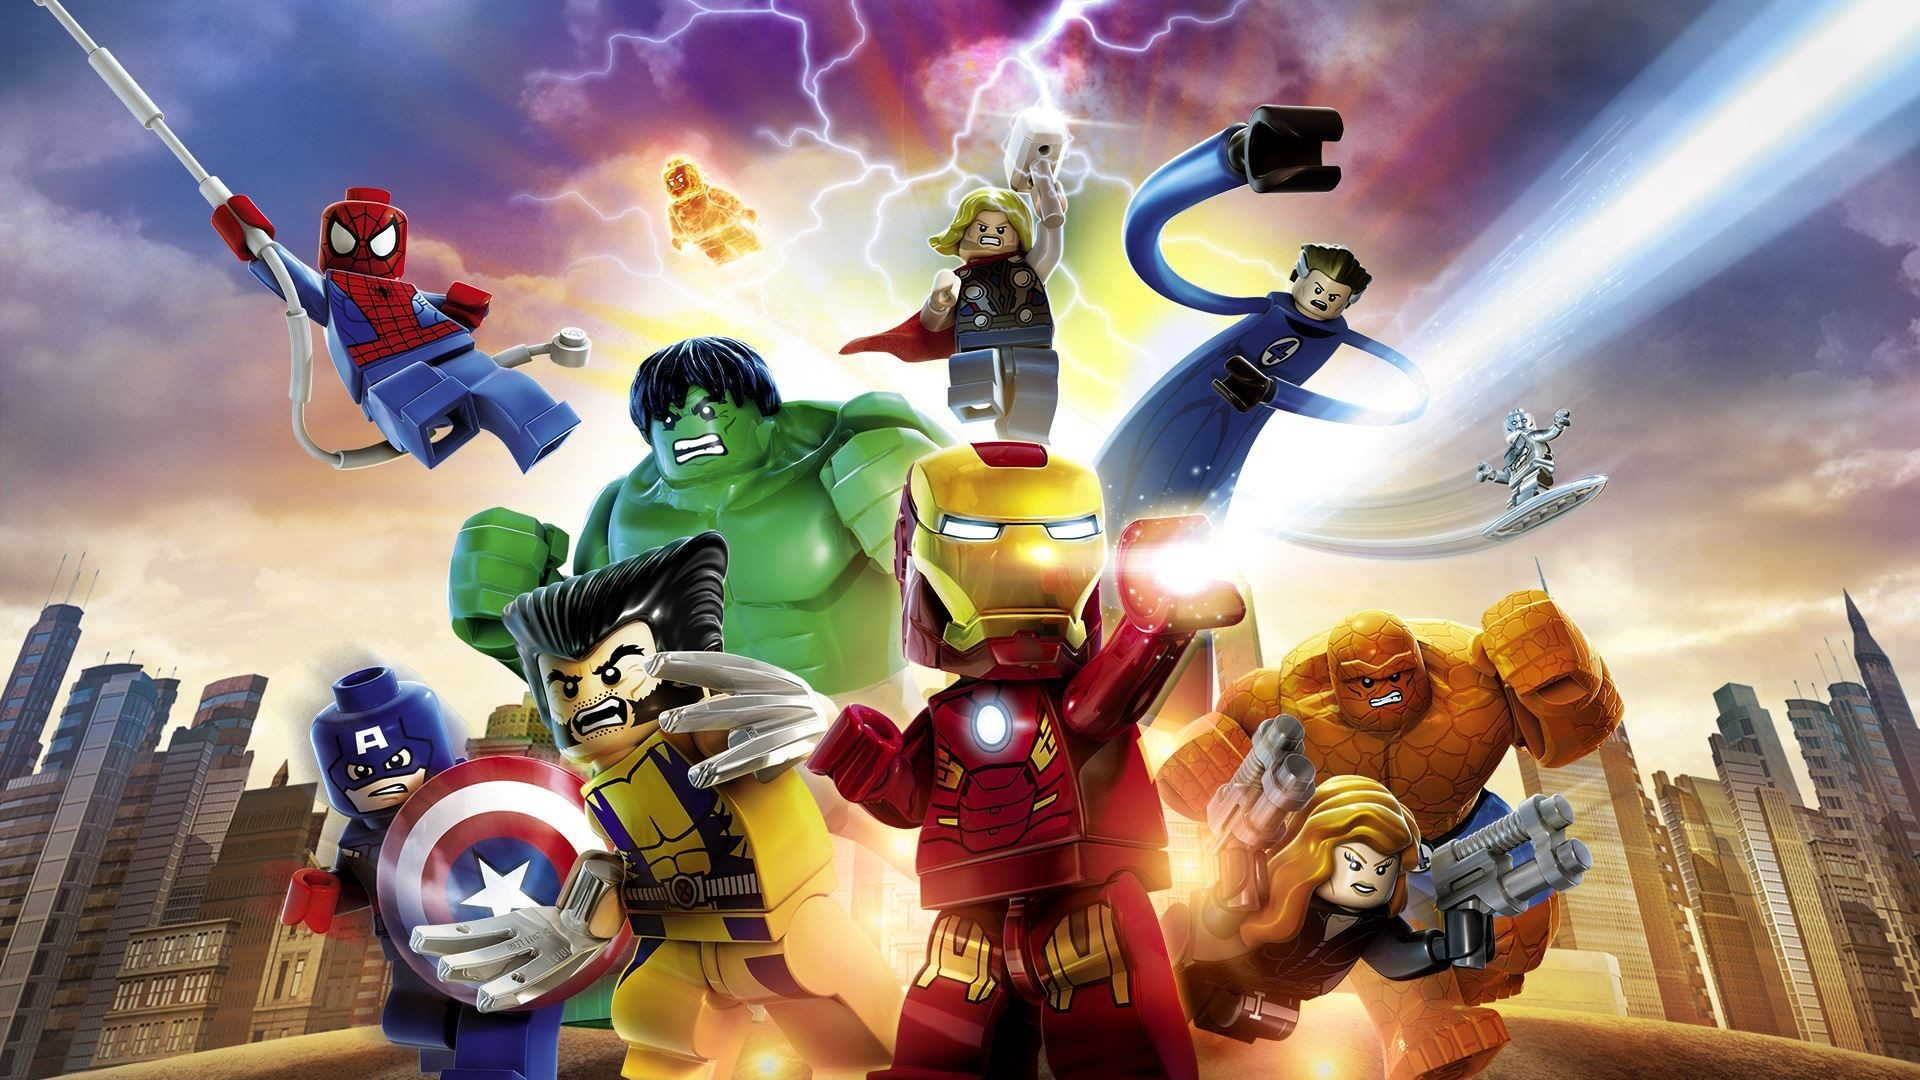 Res: 1920x1080, LEGO Marvel Super Heroes HD Wallpapers 2 - 1920 X 1080 | stmed.net